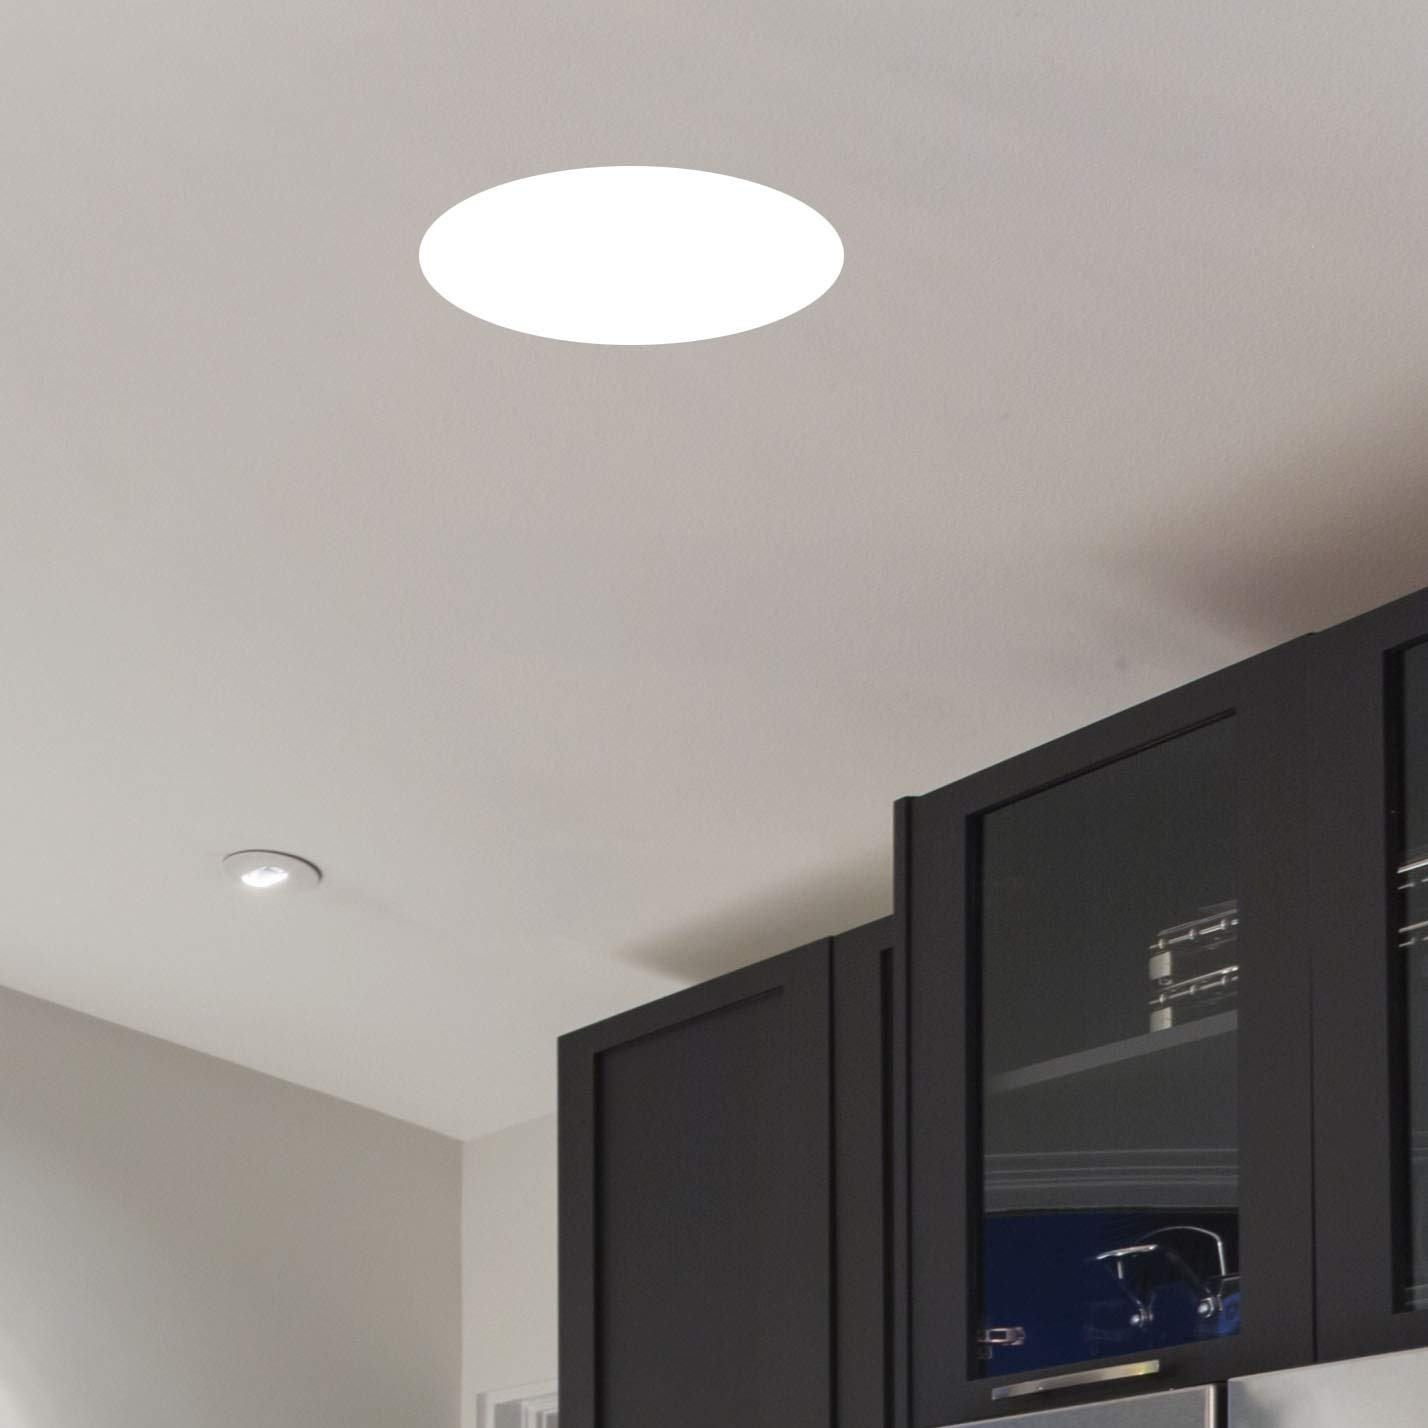 11'' Ceiling Light with White Diffuser (White Finish)